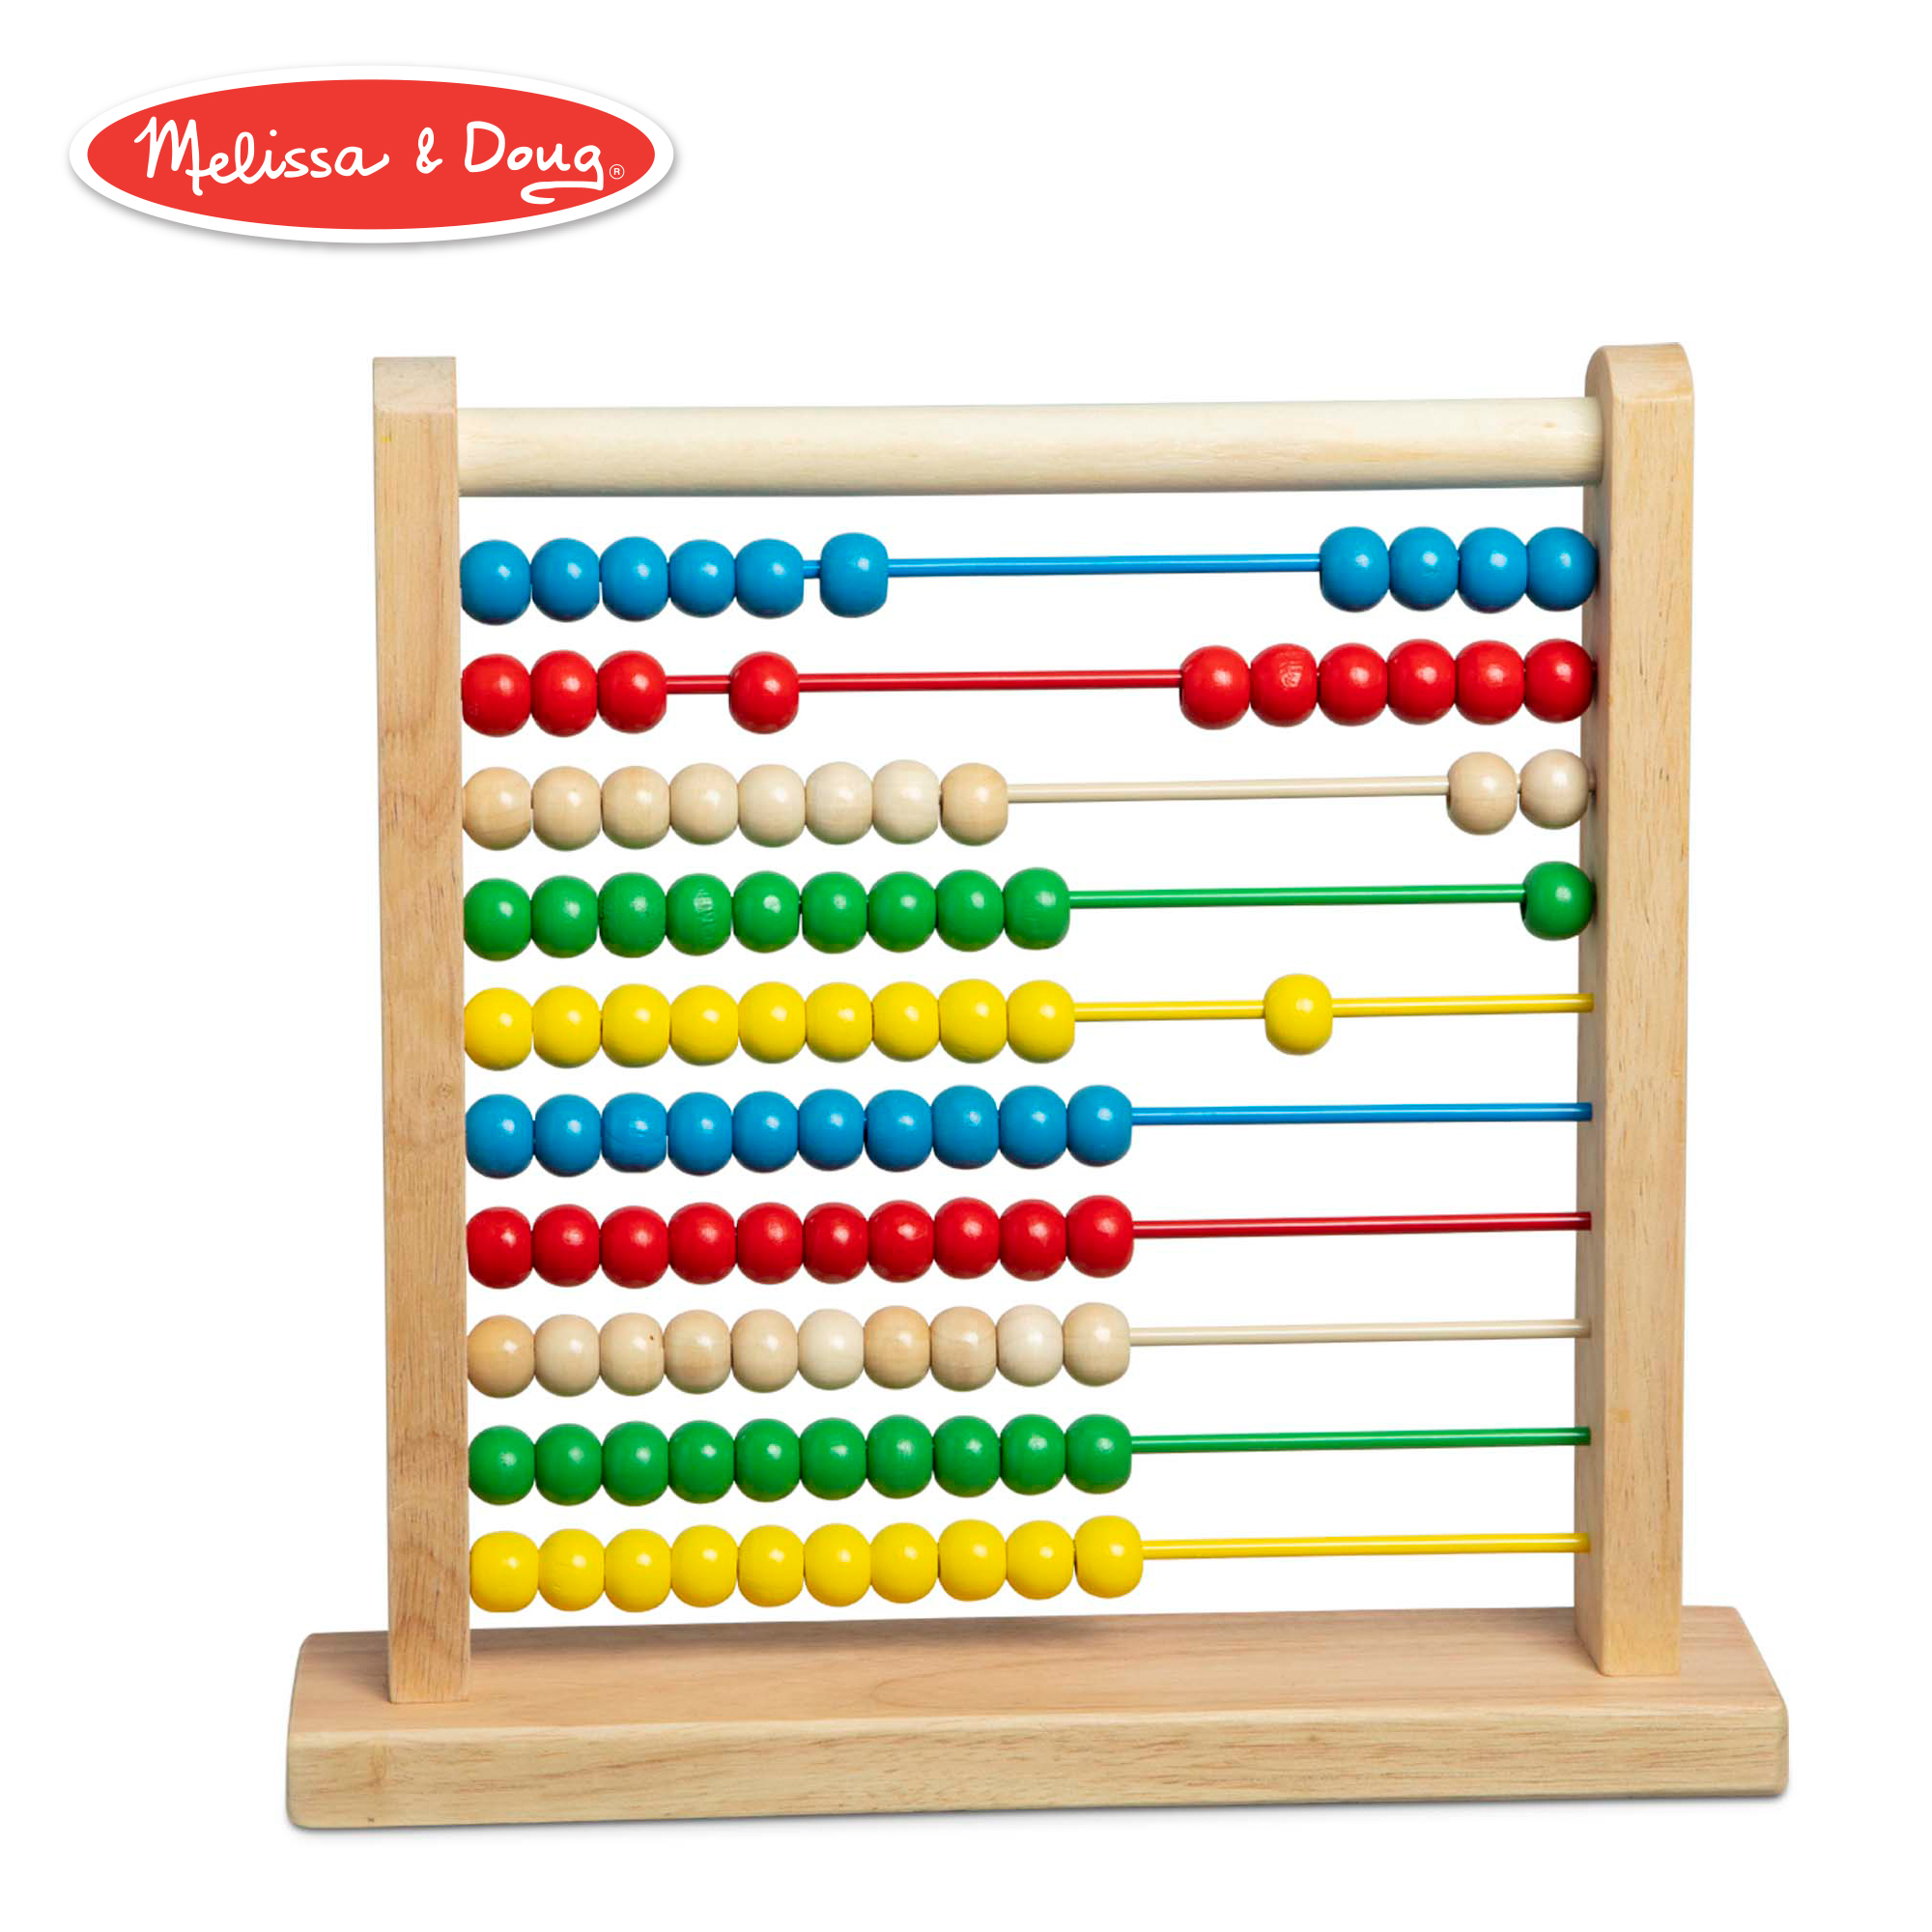 Melissa Doug Abacus Classic Wooden Toy Developmental Toy Brightly Colored Wooden Beads 8 Extension Activities Walmart Com